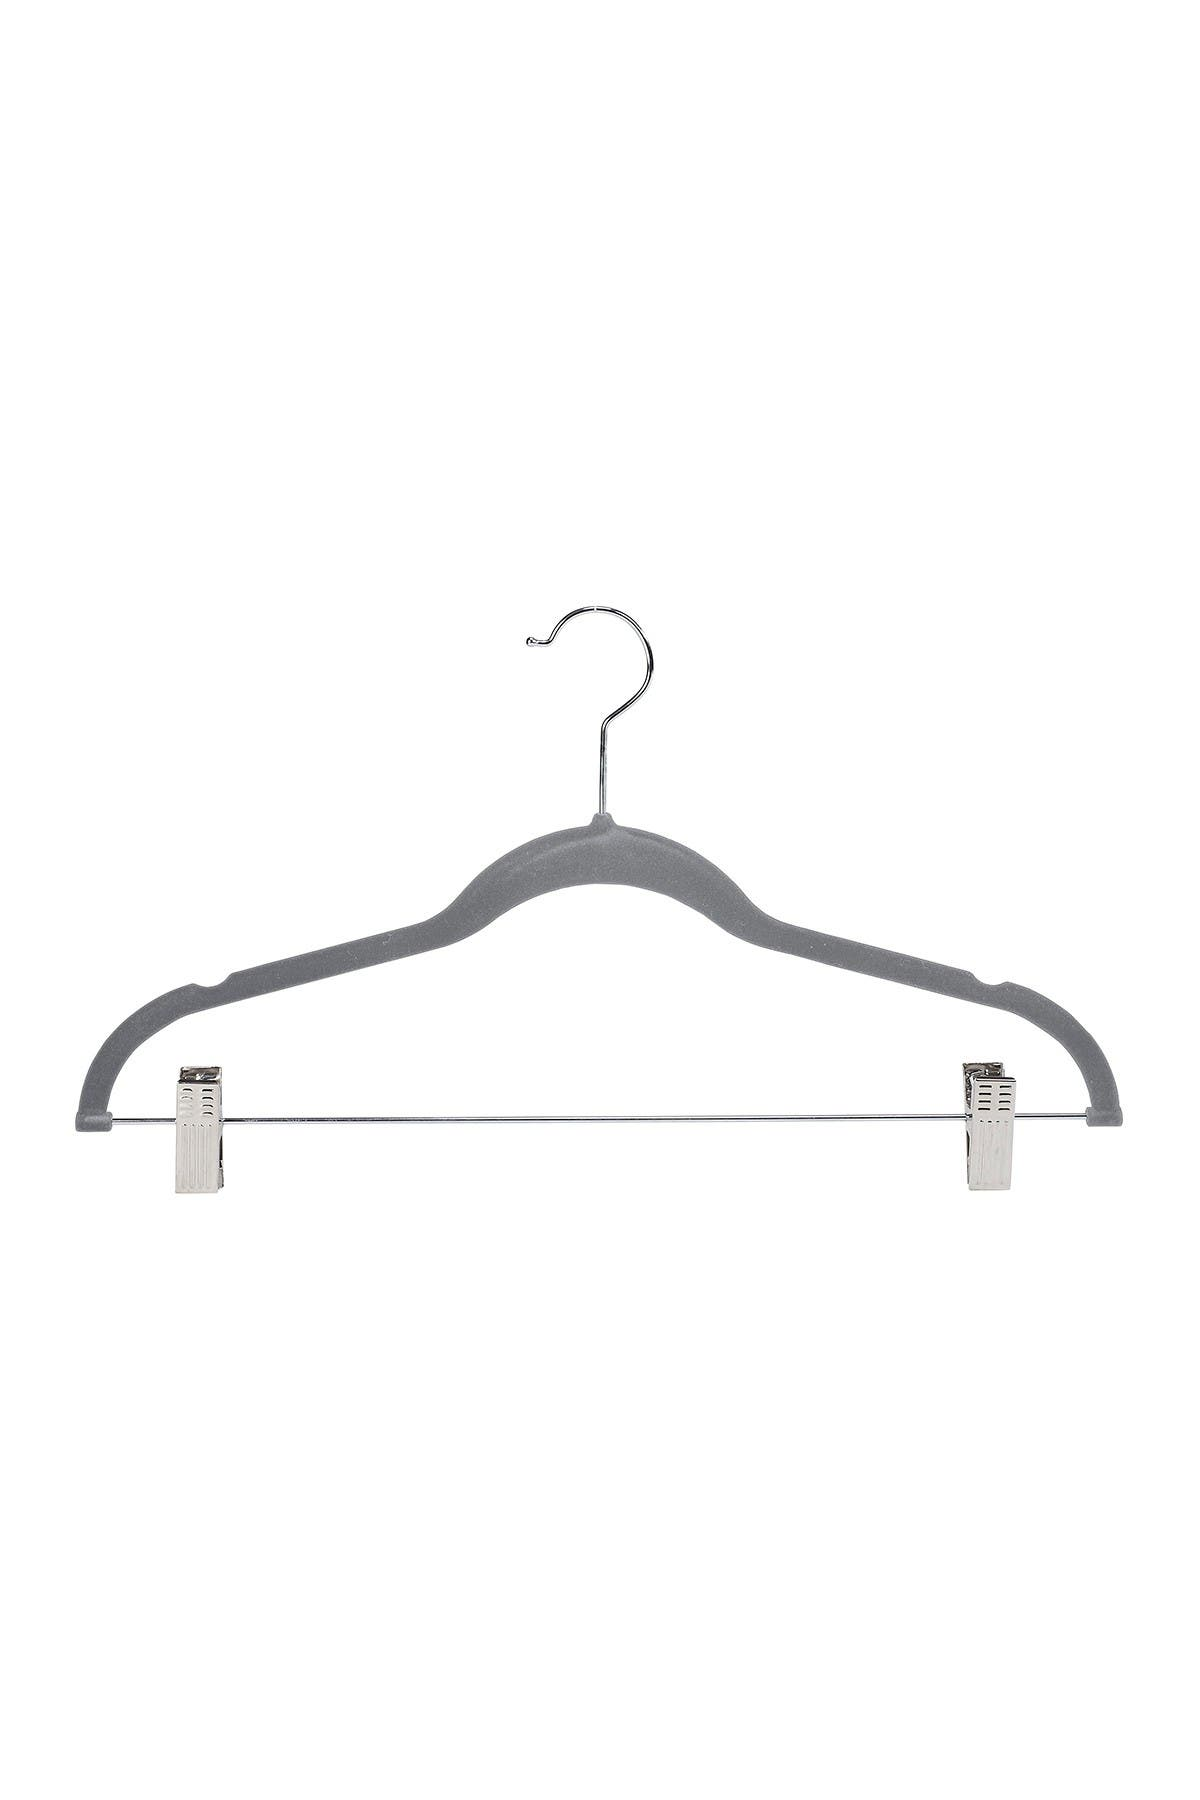 Image of Kennedy International Inc. Grey Simplify Velvet Hangers with Clips - Set of 6